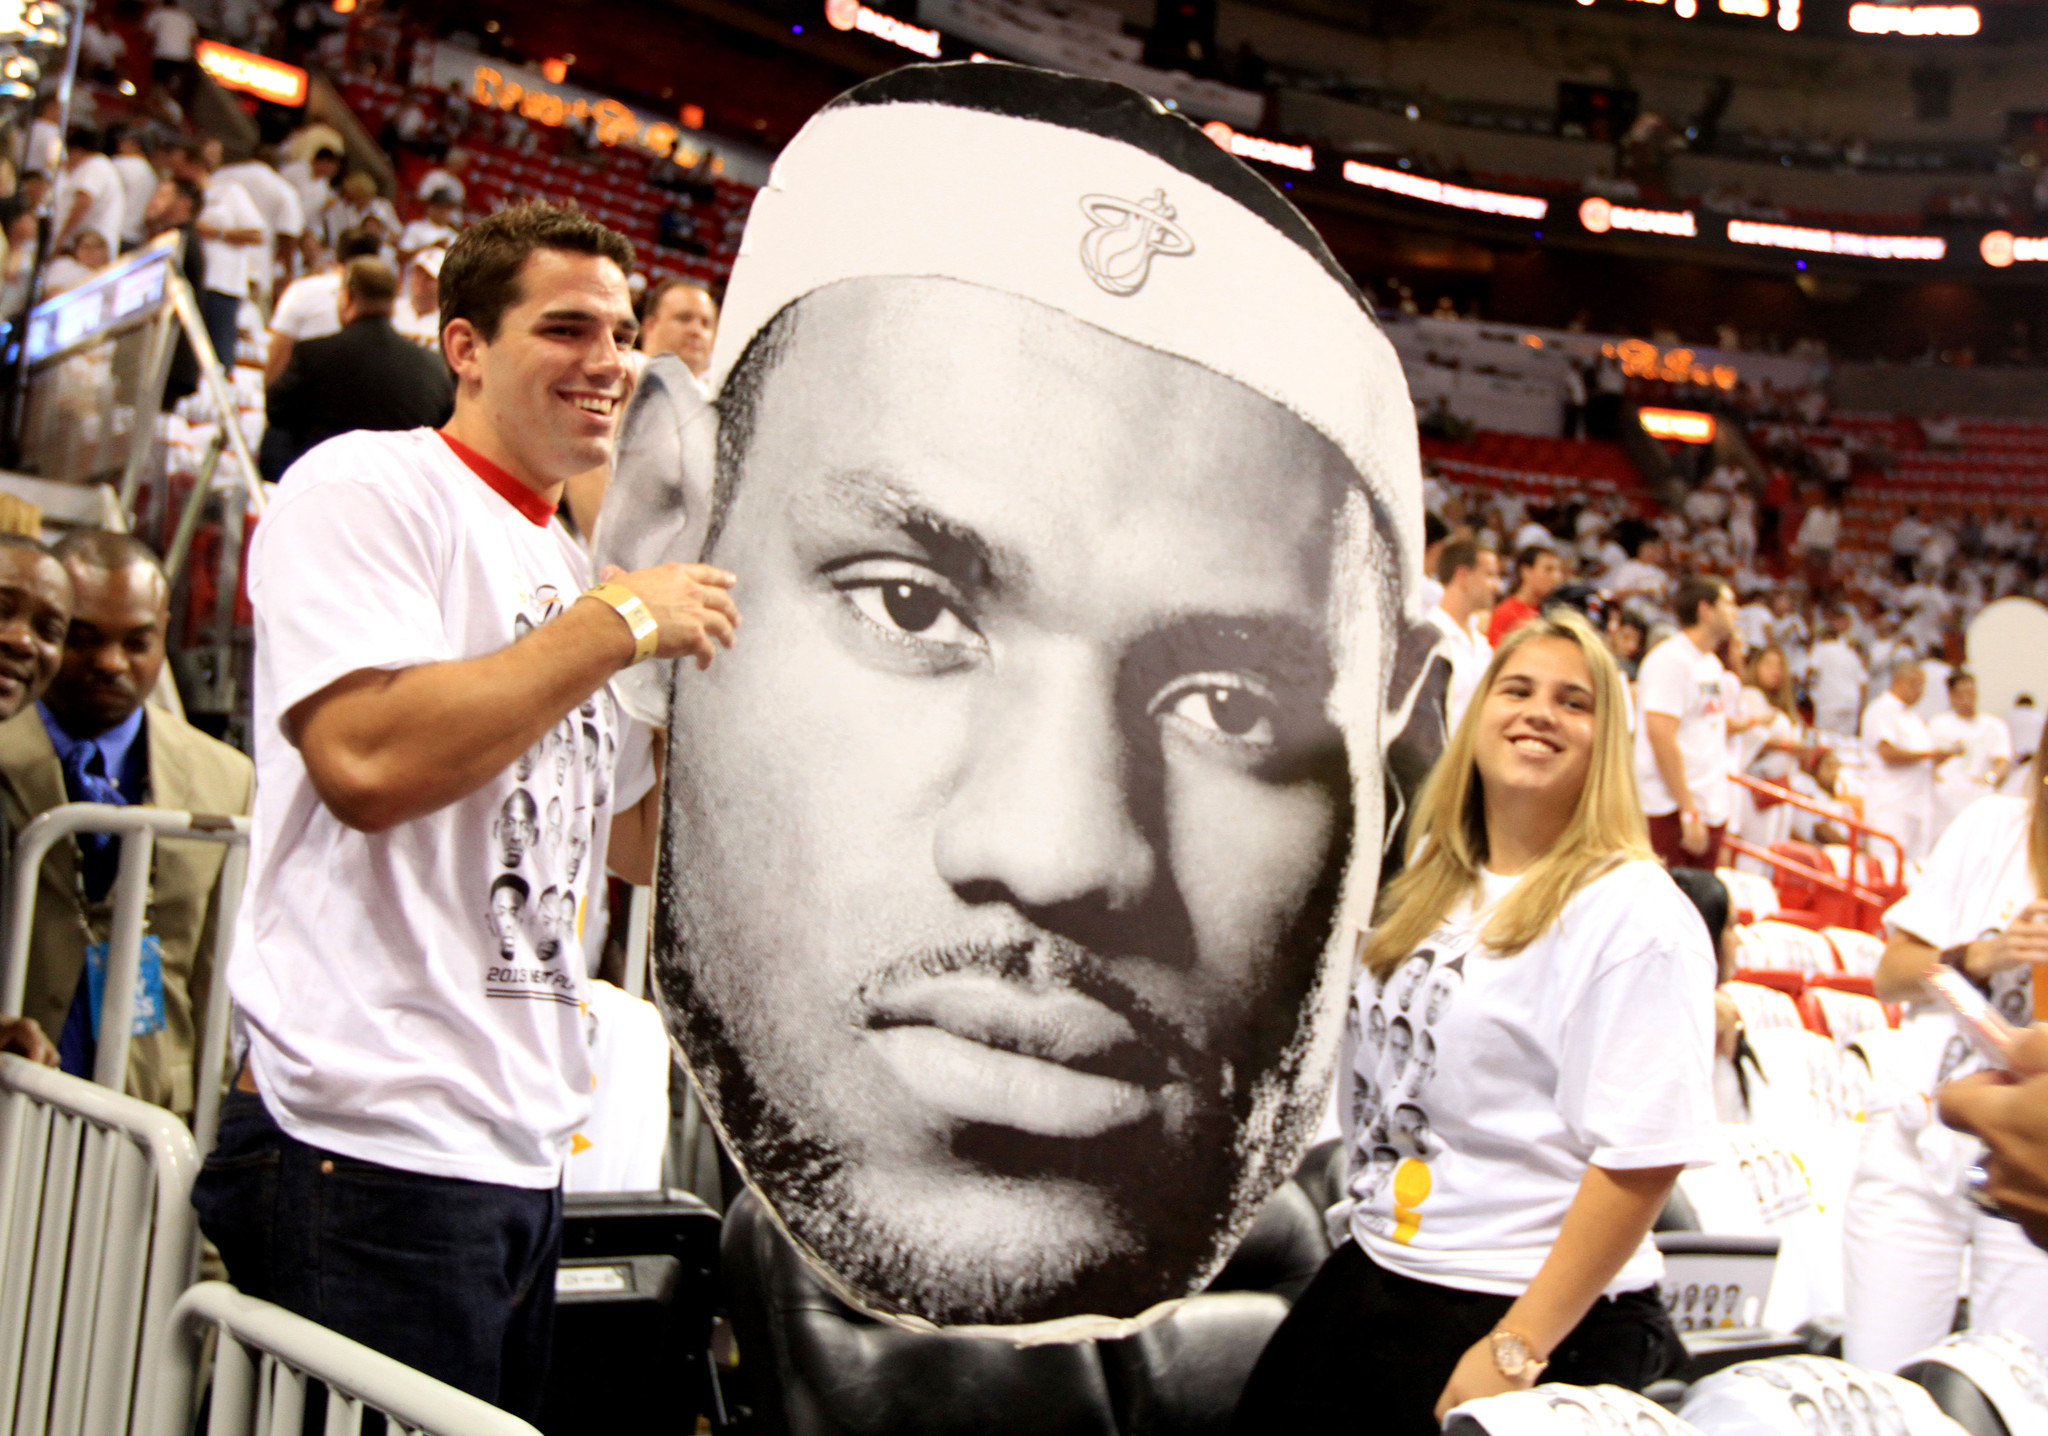 White Hot Heat Fans Game 7 - Big Head